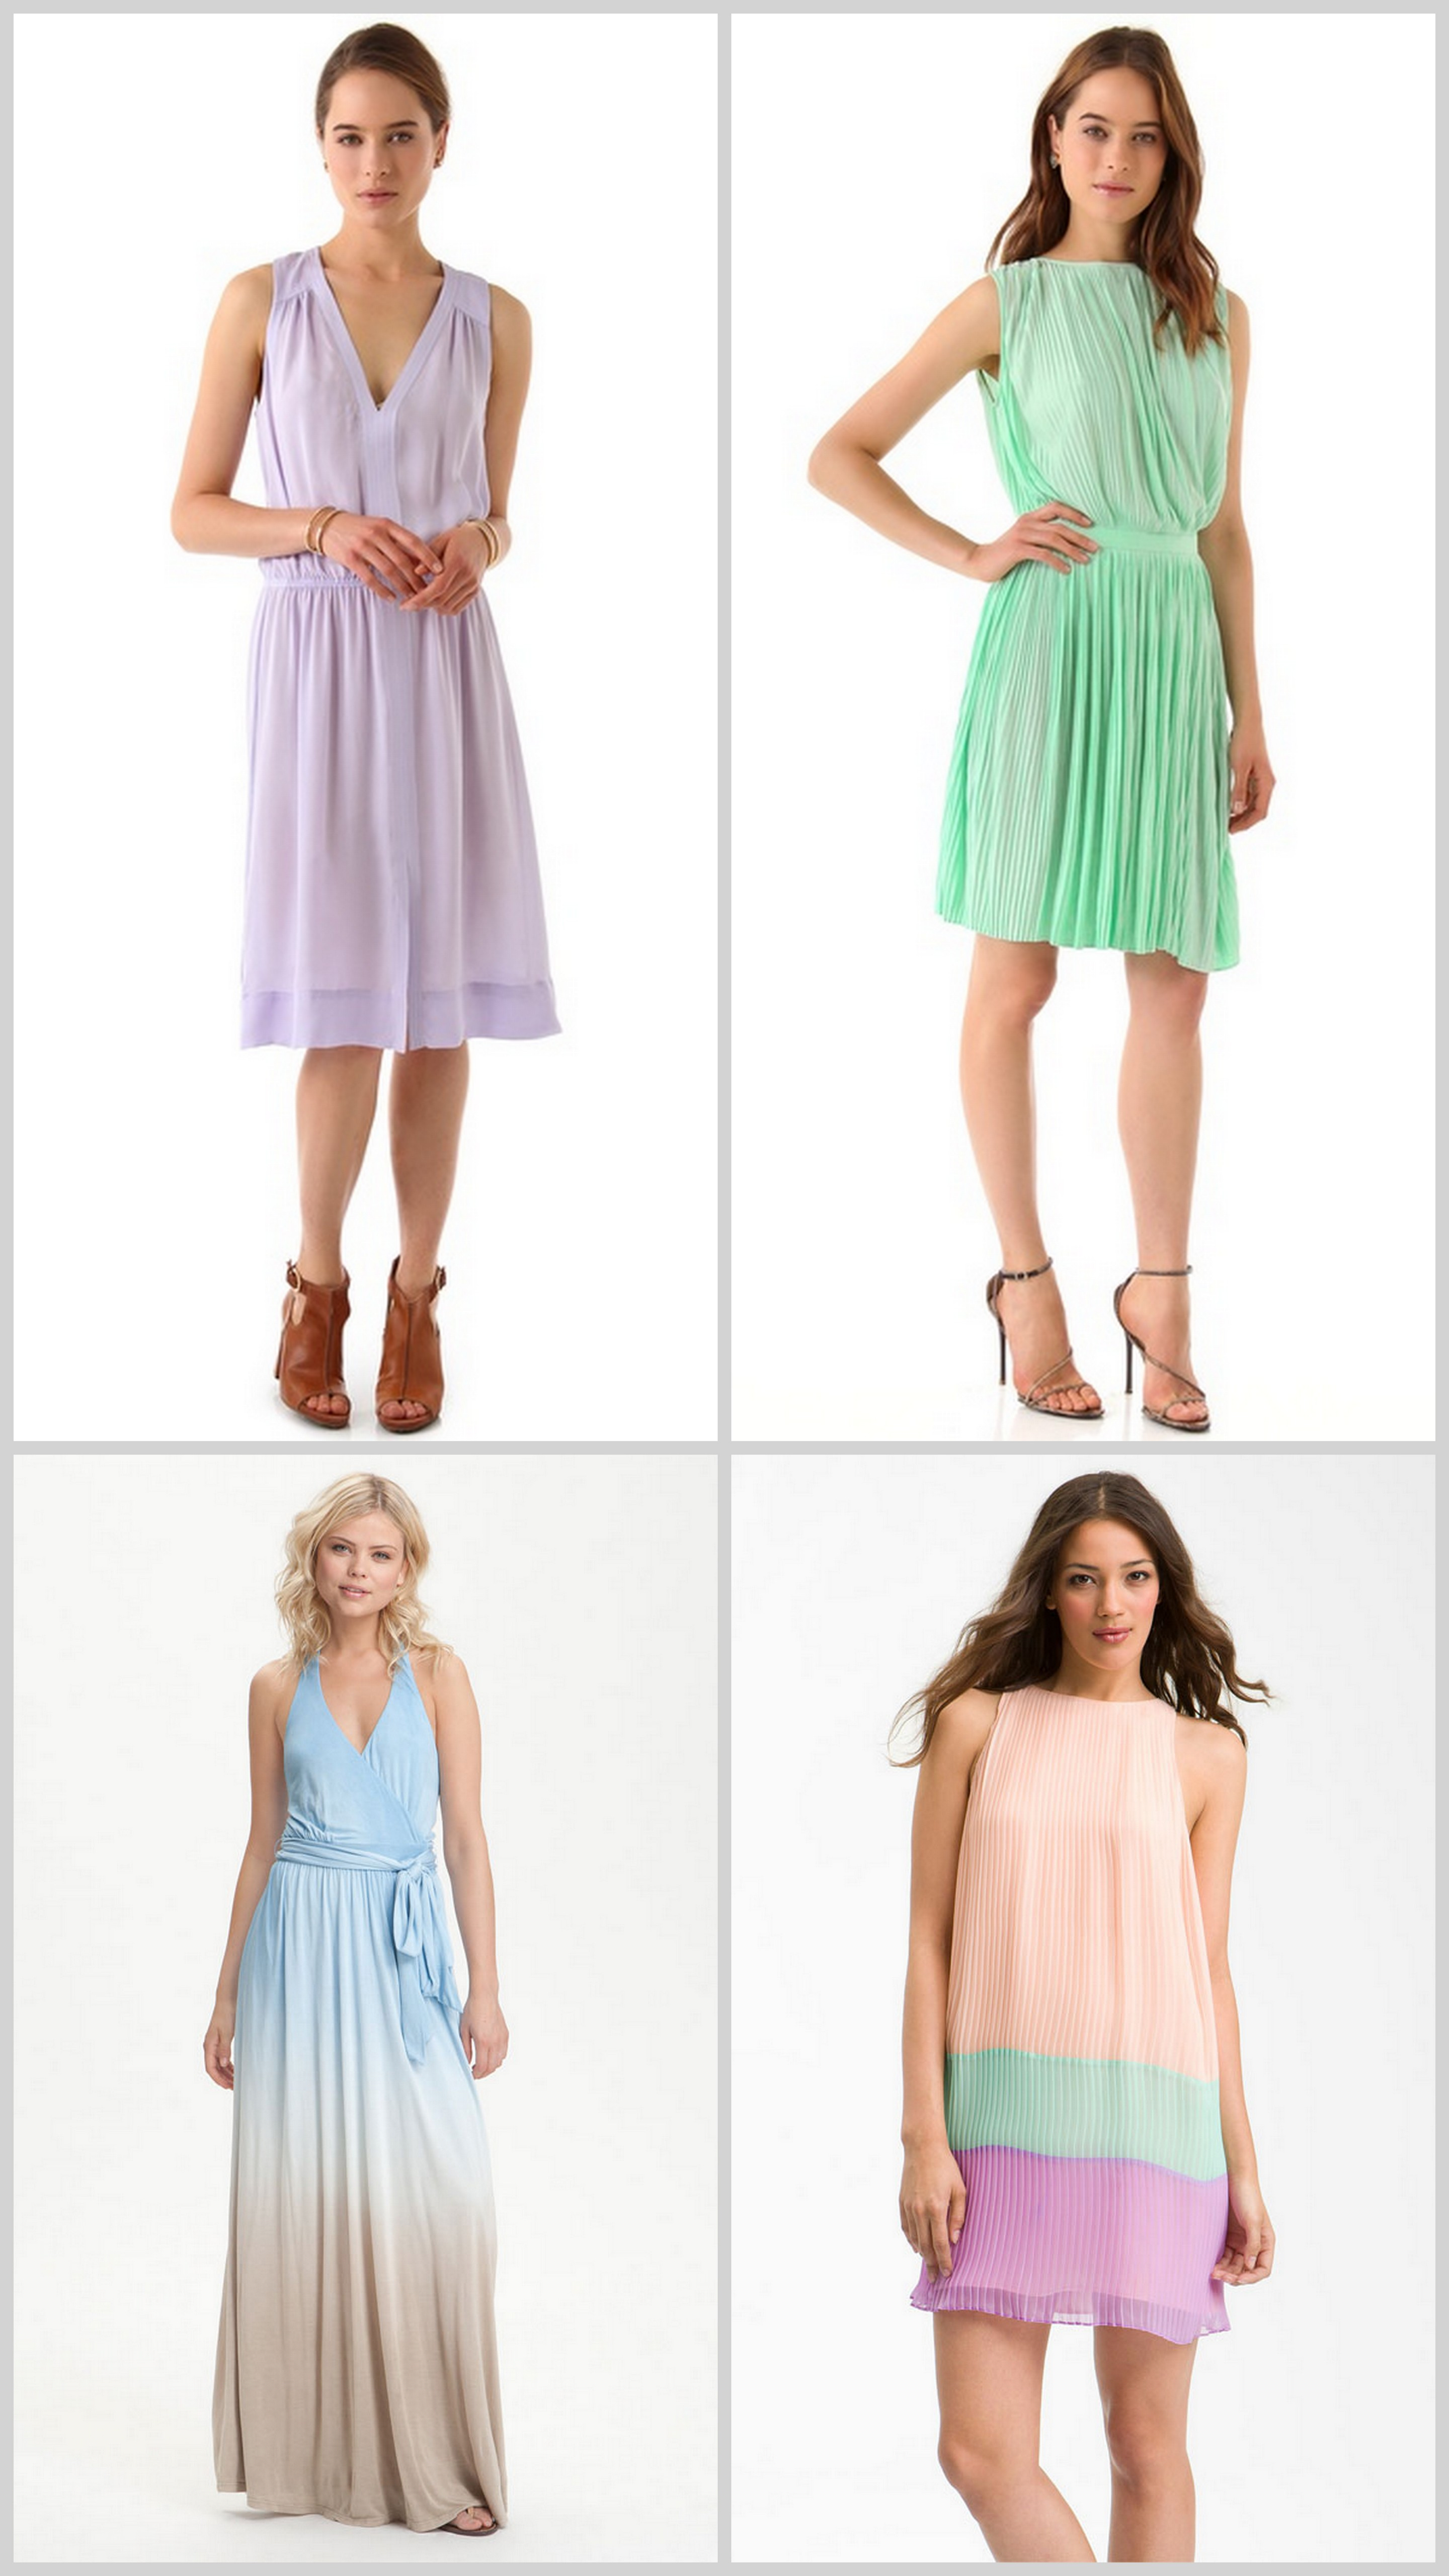 Cultro women's clothes for spring-summer pictures